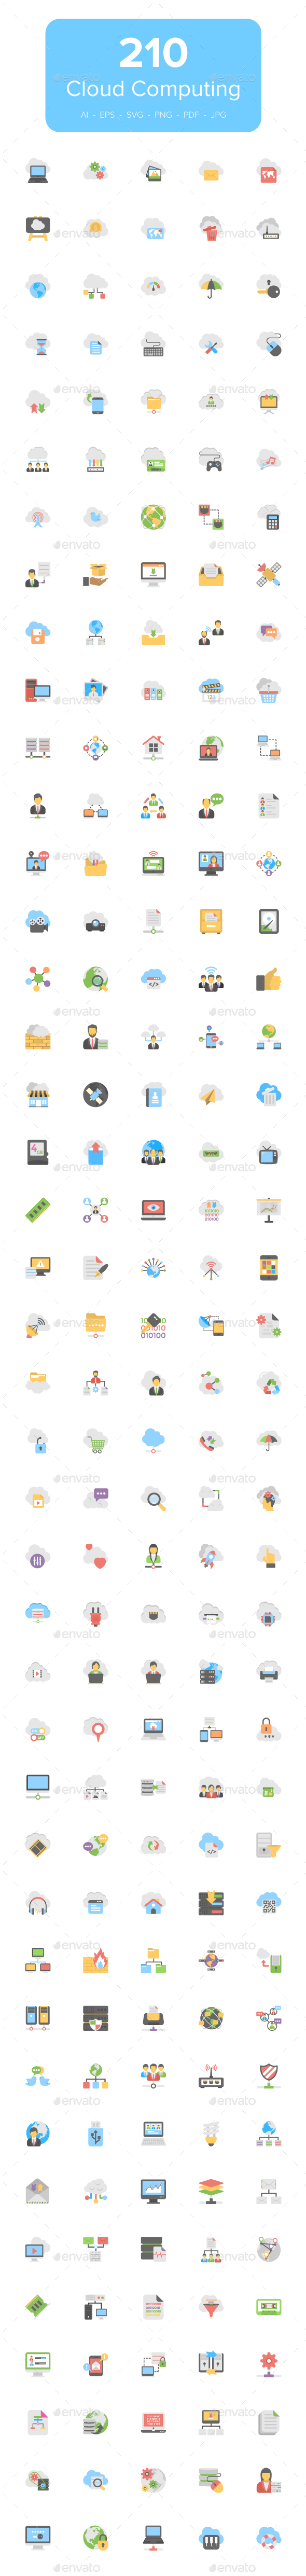 210 Flat Cloud Computing Icons - Icons